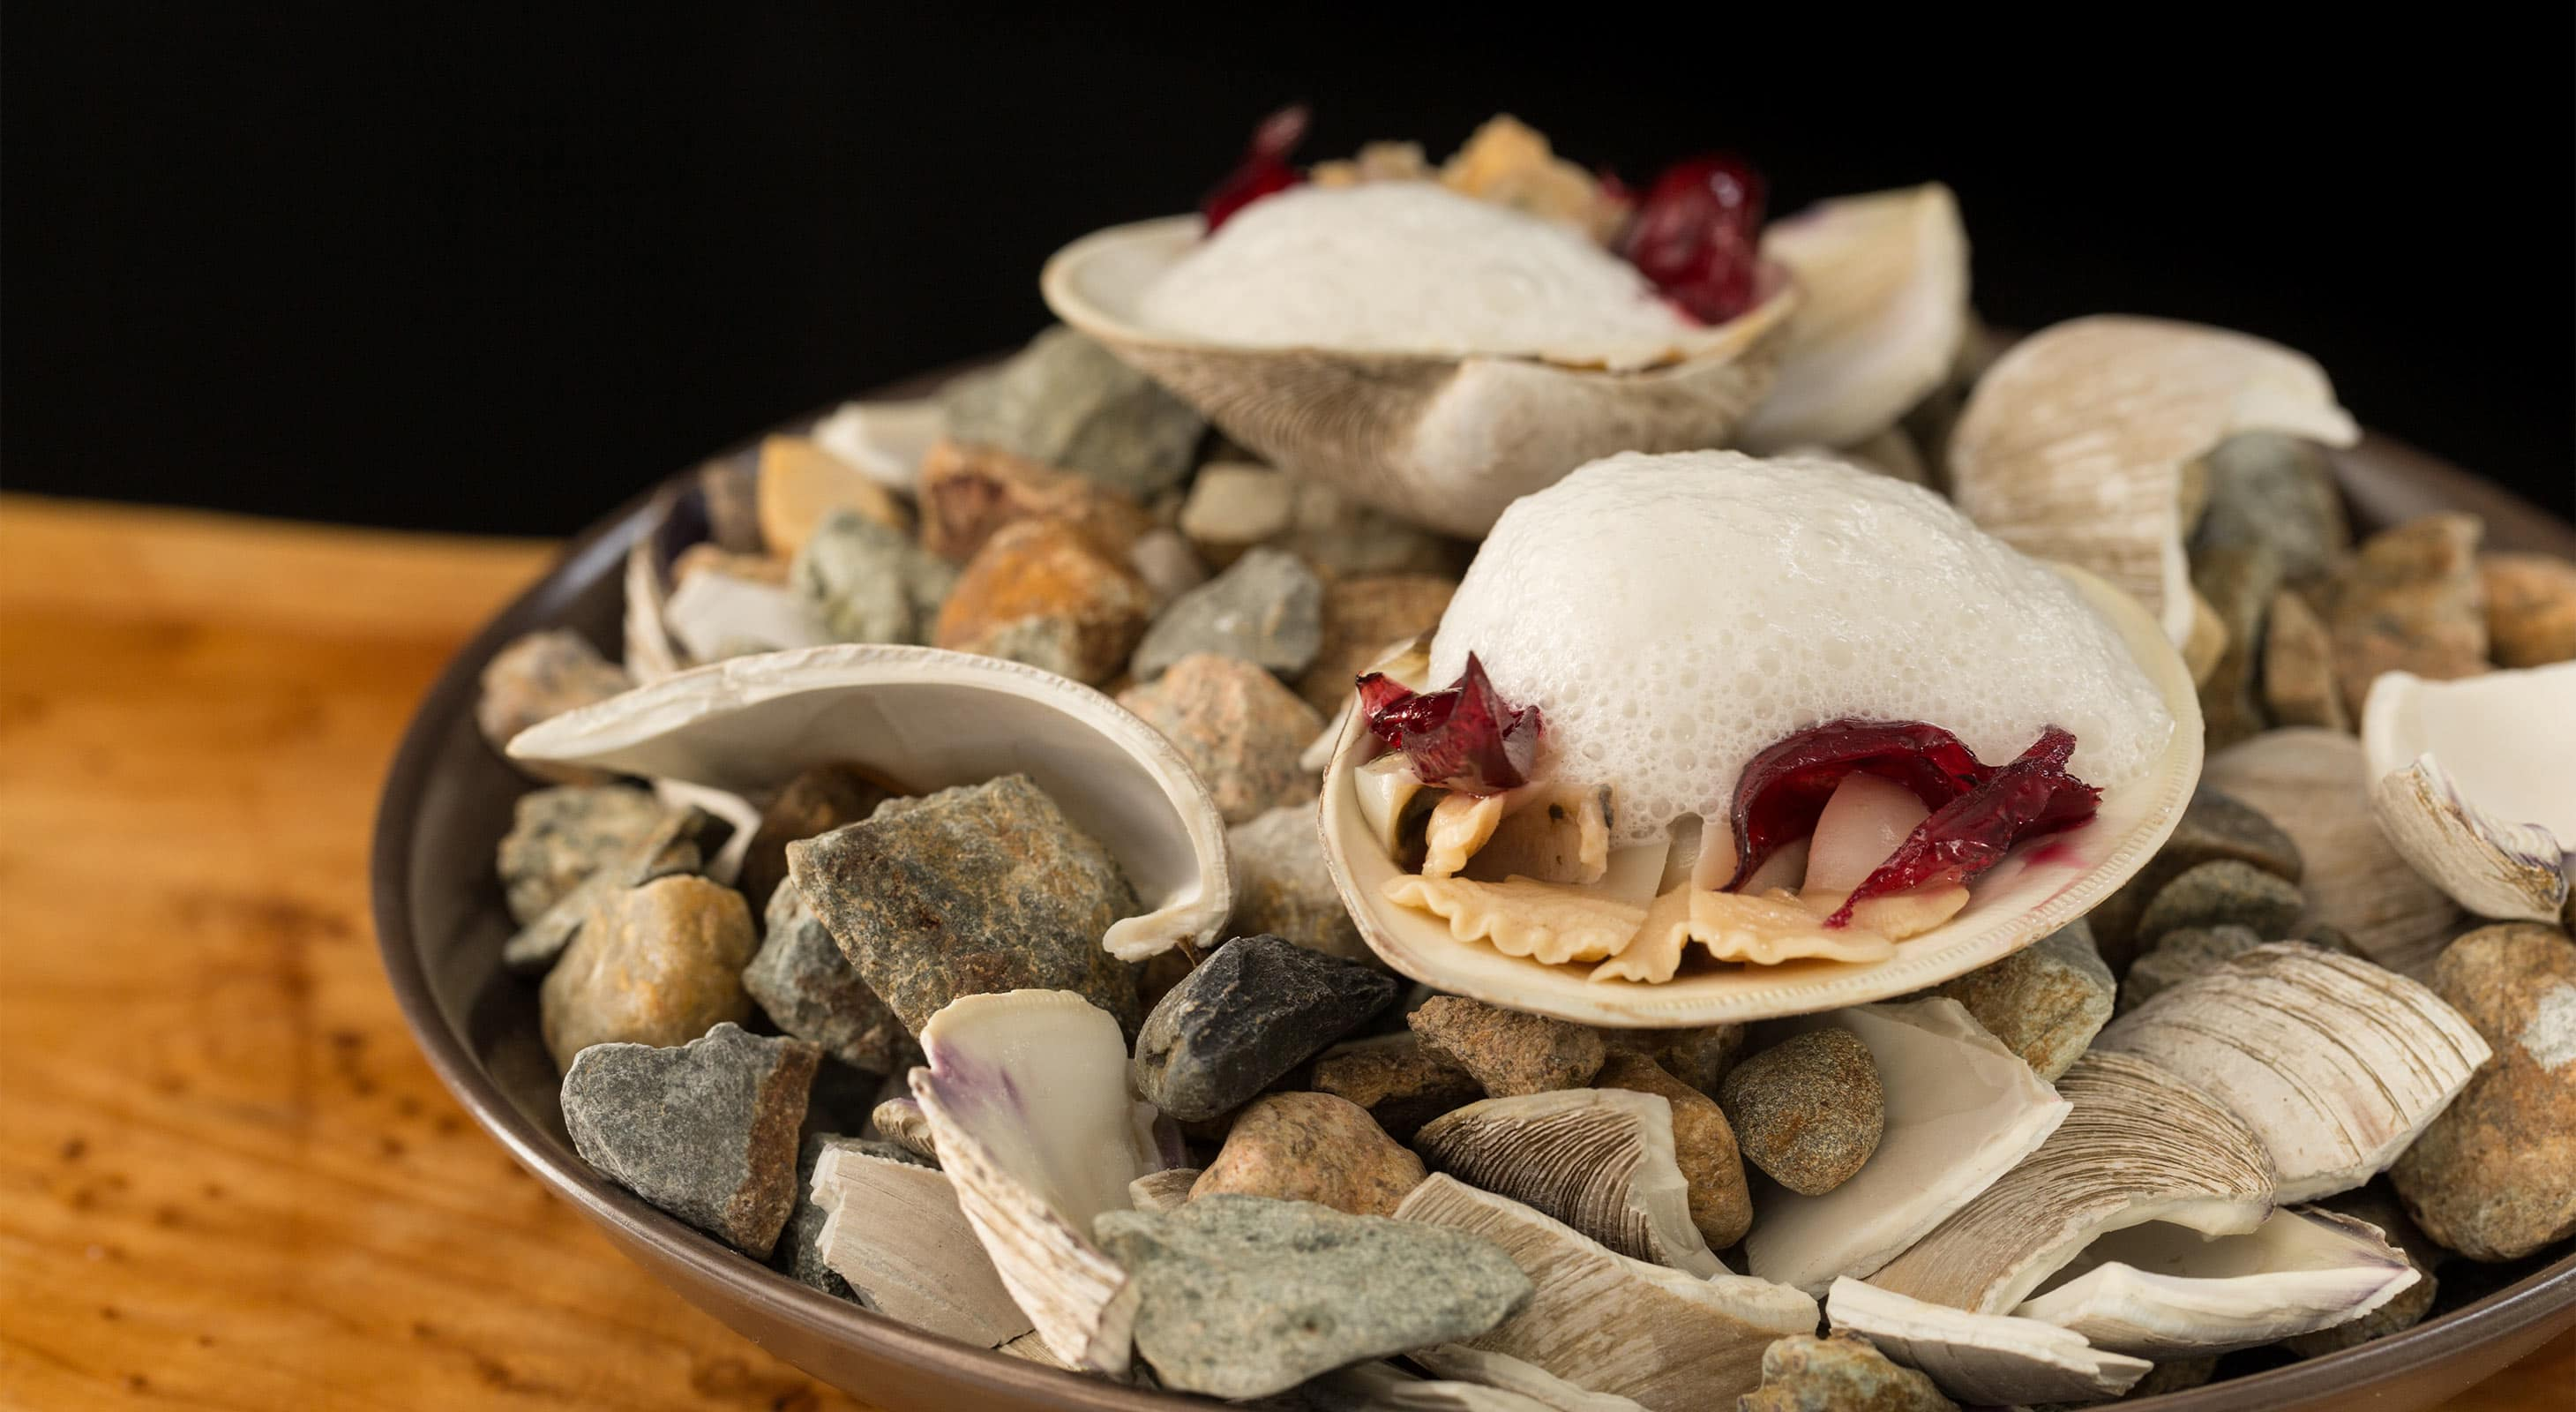 Prepared clams in a bowl with shells.